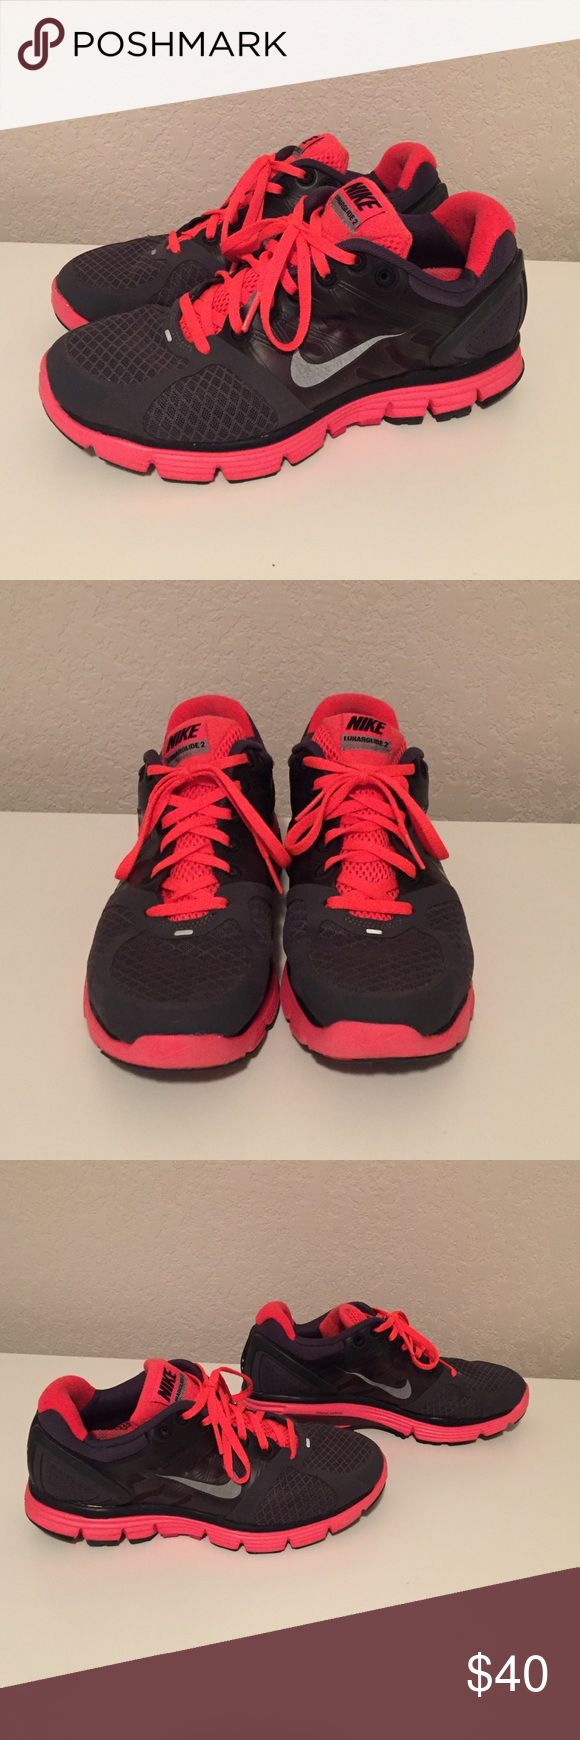 Nike Lunarglide 2 Great condition! Grey and bright coral color! Very comfy! Size 7 Nike Shoes Athletic Shoes